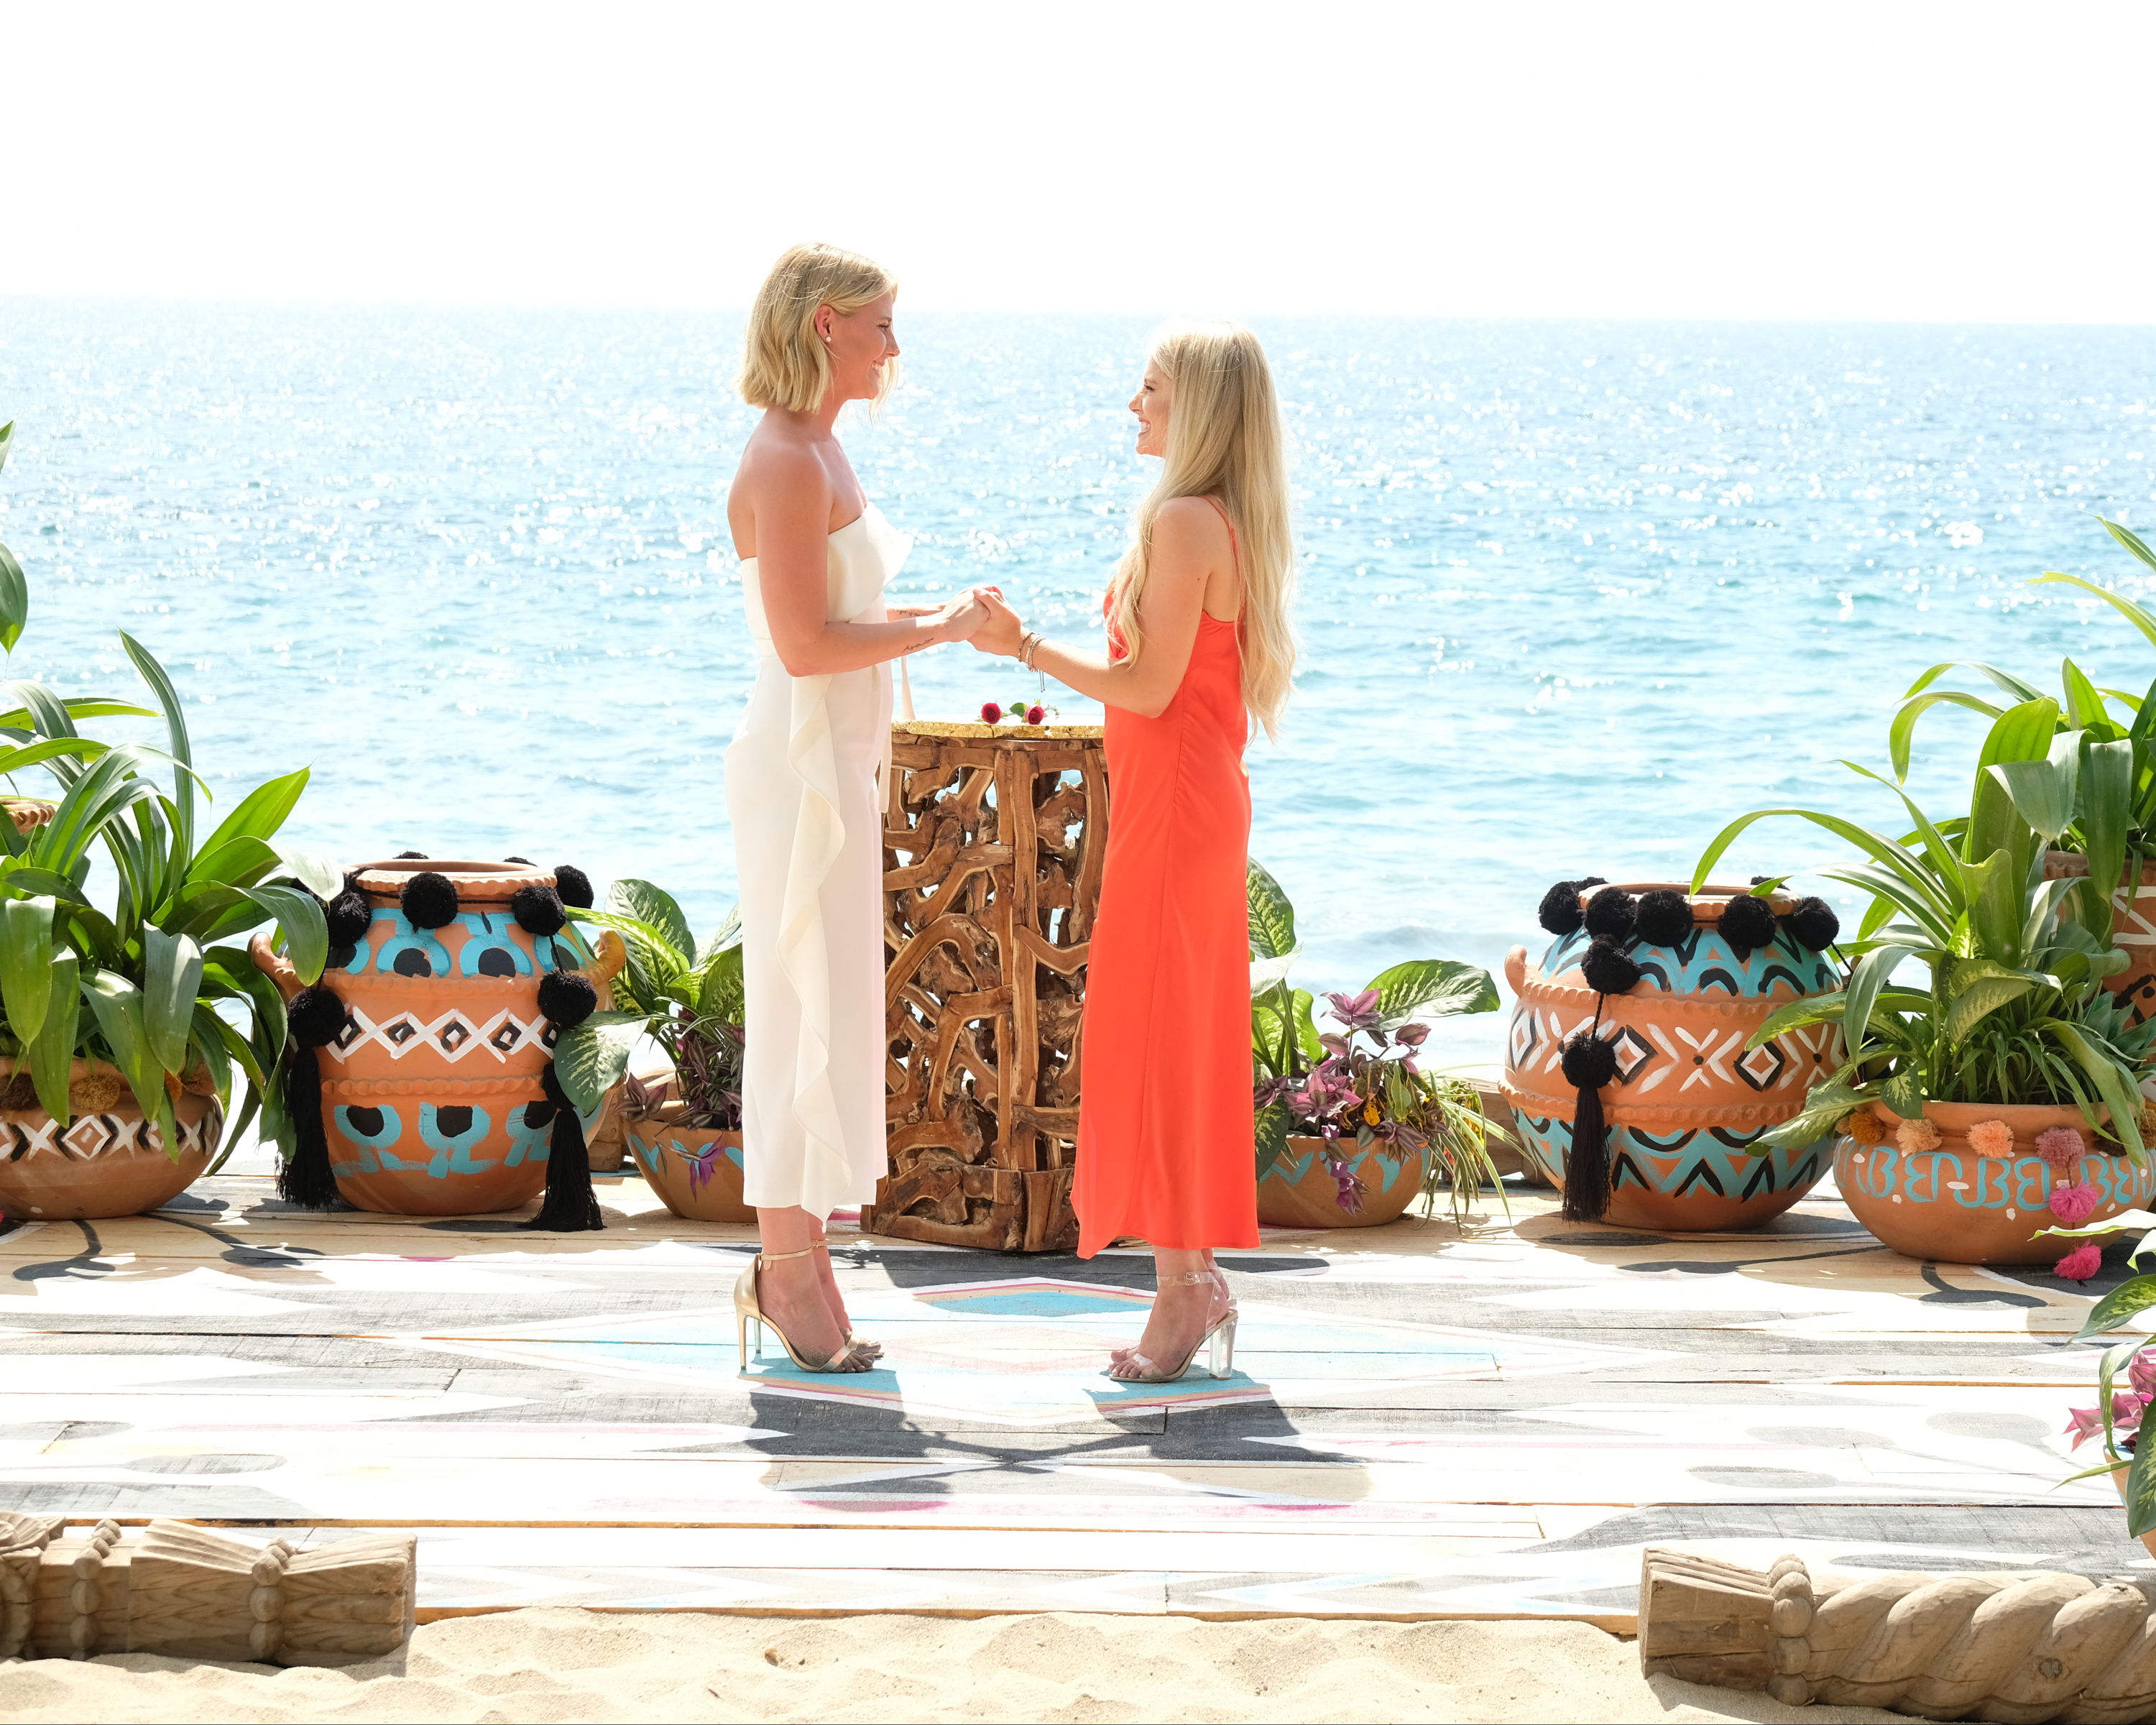 Kristian Haggerty and Demi Burnett got engaged on the season finale of 'Bachelor in Paradise,' becoming the first same-sex couple in 'The Bachelor' franchise.